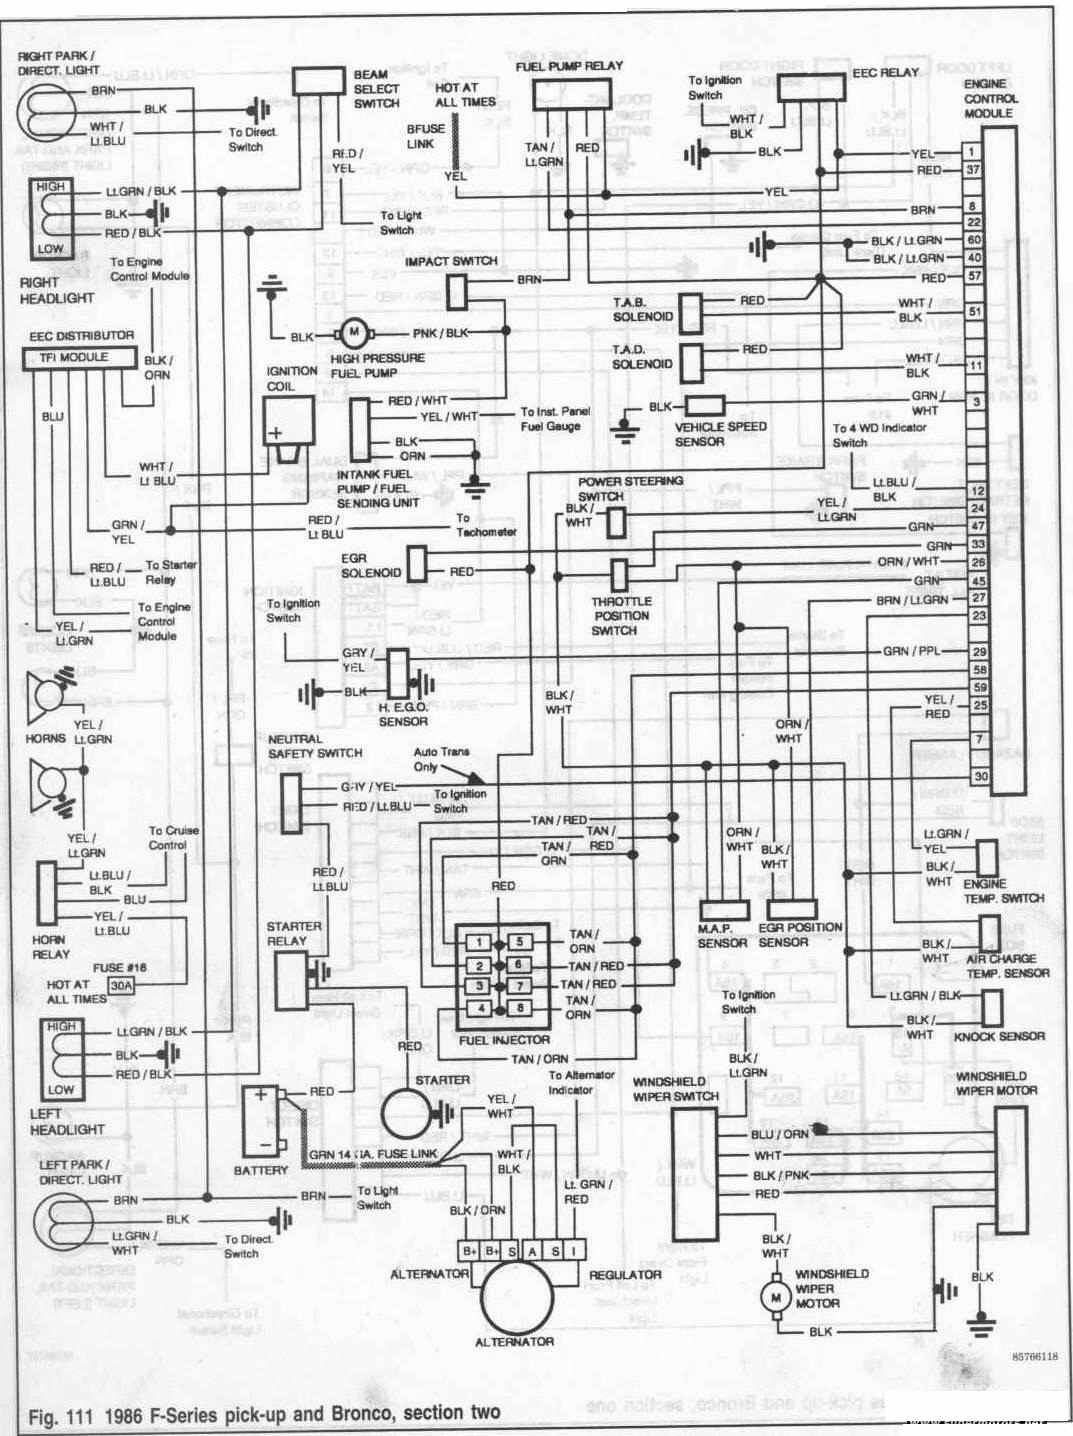 ... ford bronco and f series pickup 1986 engine control module 92 ford  bronco wiring diagram